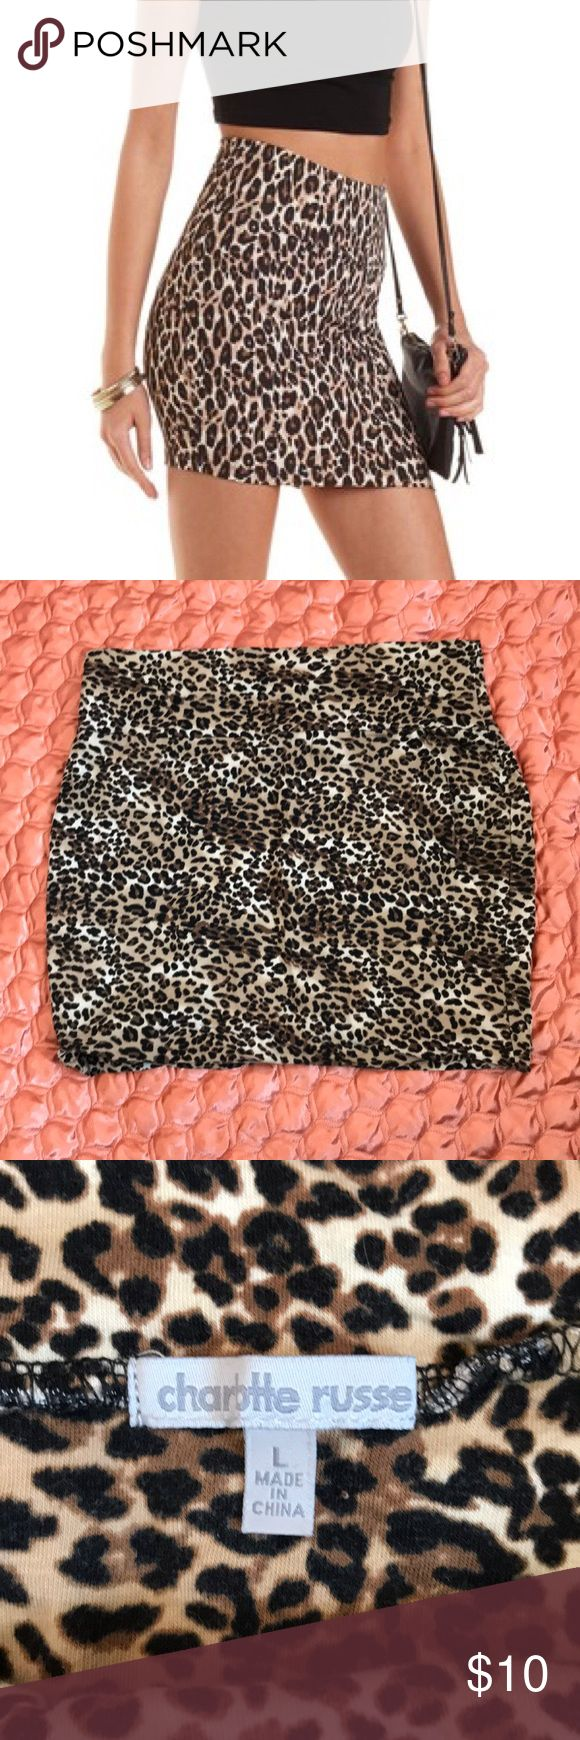 Best 25 leopard print skirt ideas on pinterest jeans jacket for charlotte russe bodycon leopard print skirt size l bankloansurffo Choice Image